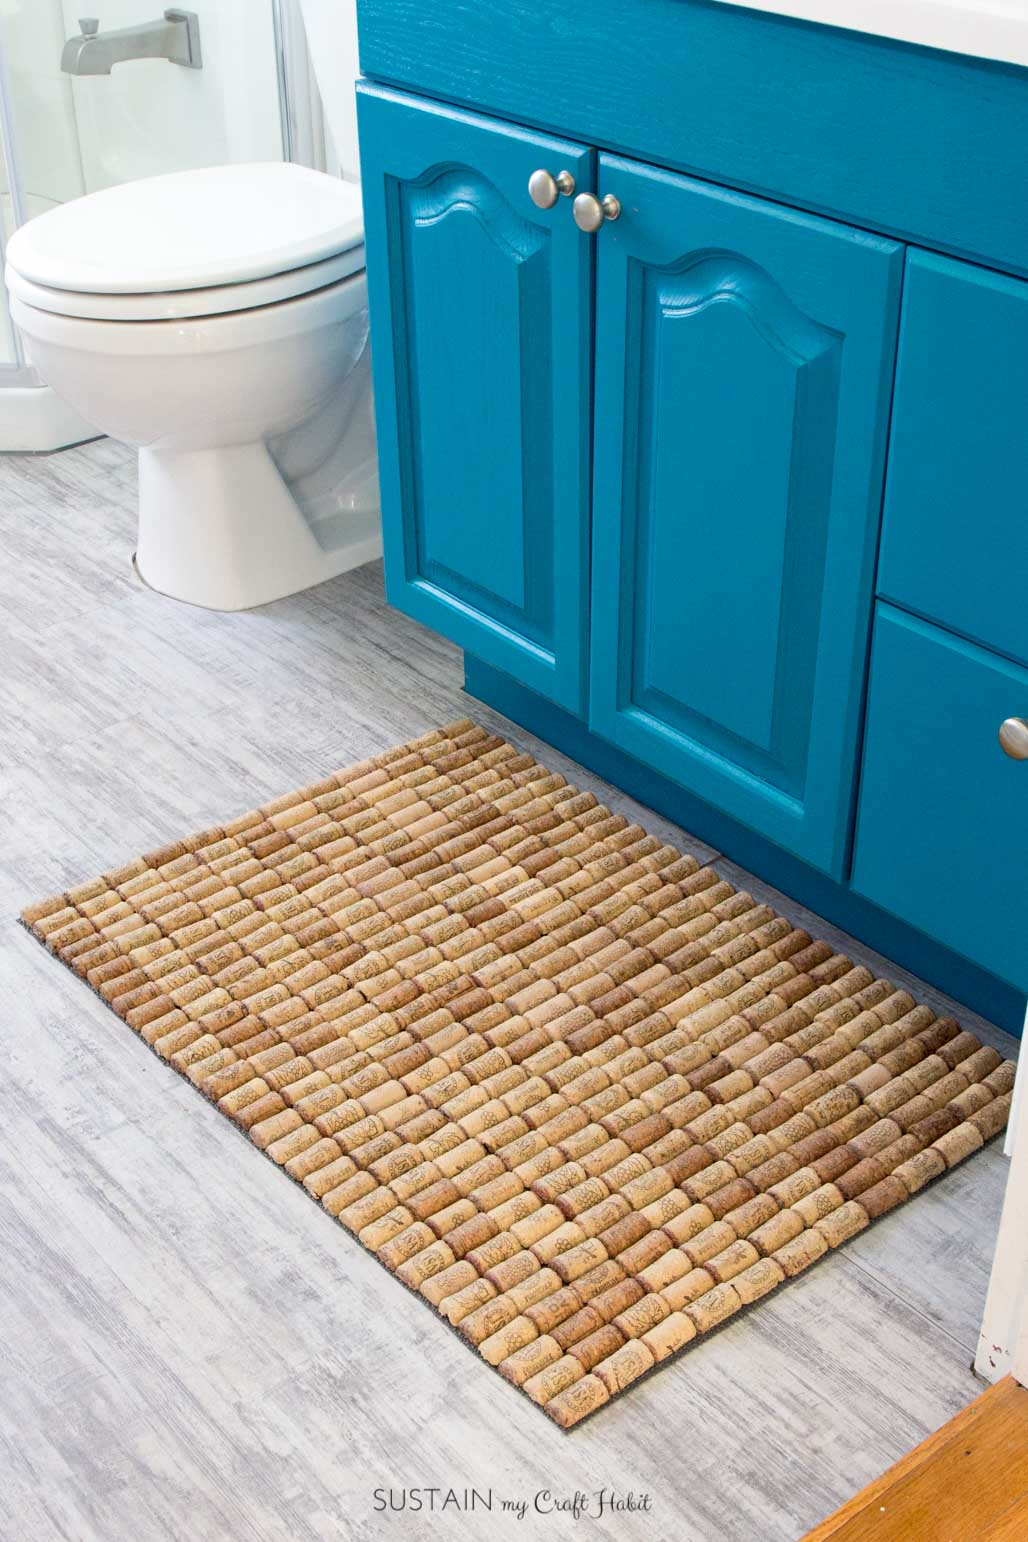 DIY wine cork bath mat. Fun upcycling project for the bathroom or kitchen.